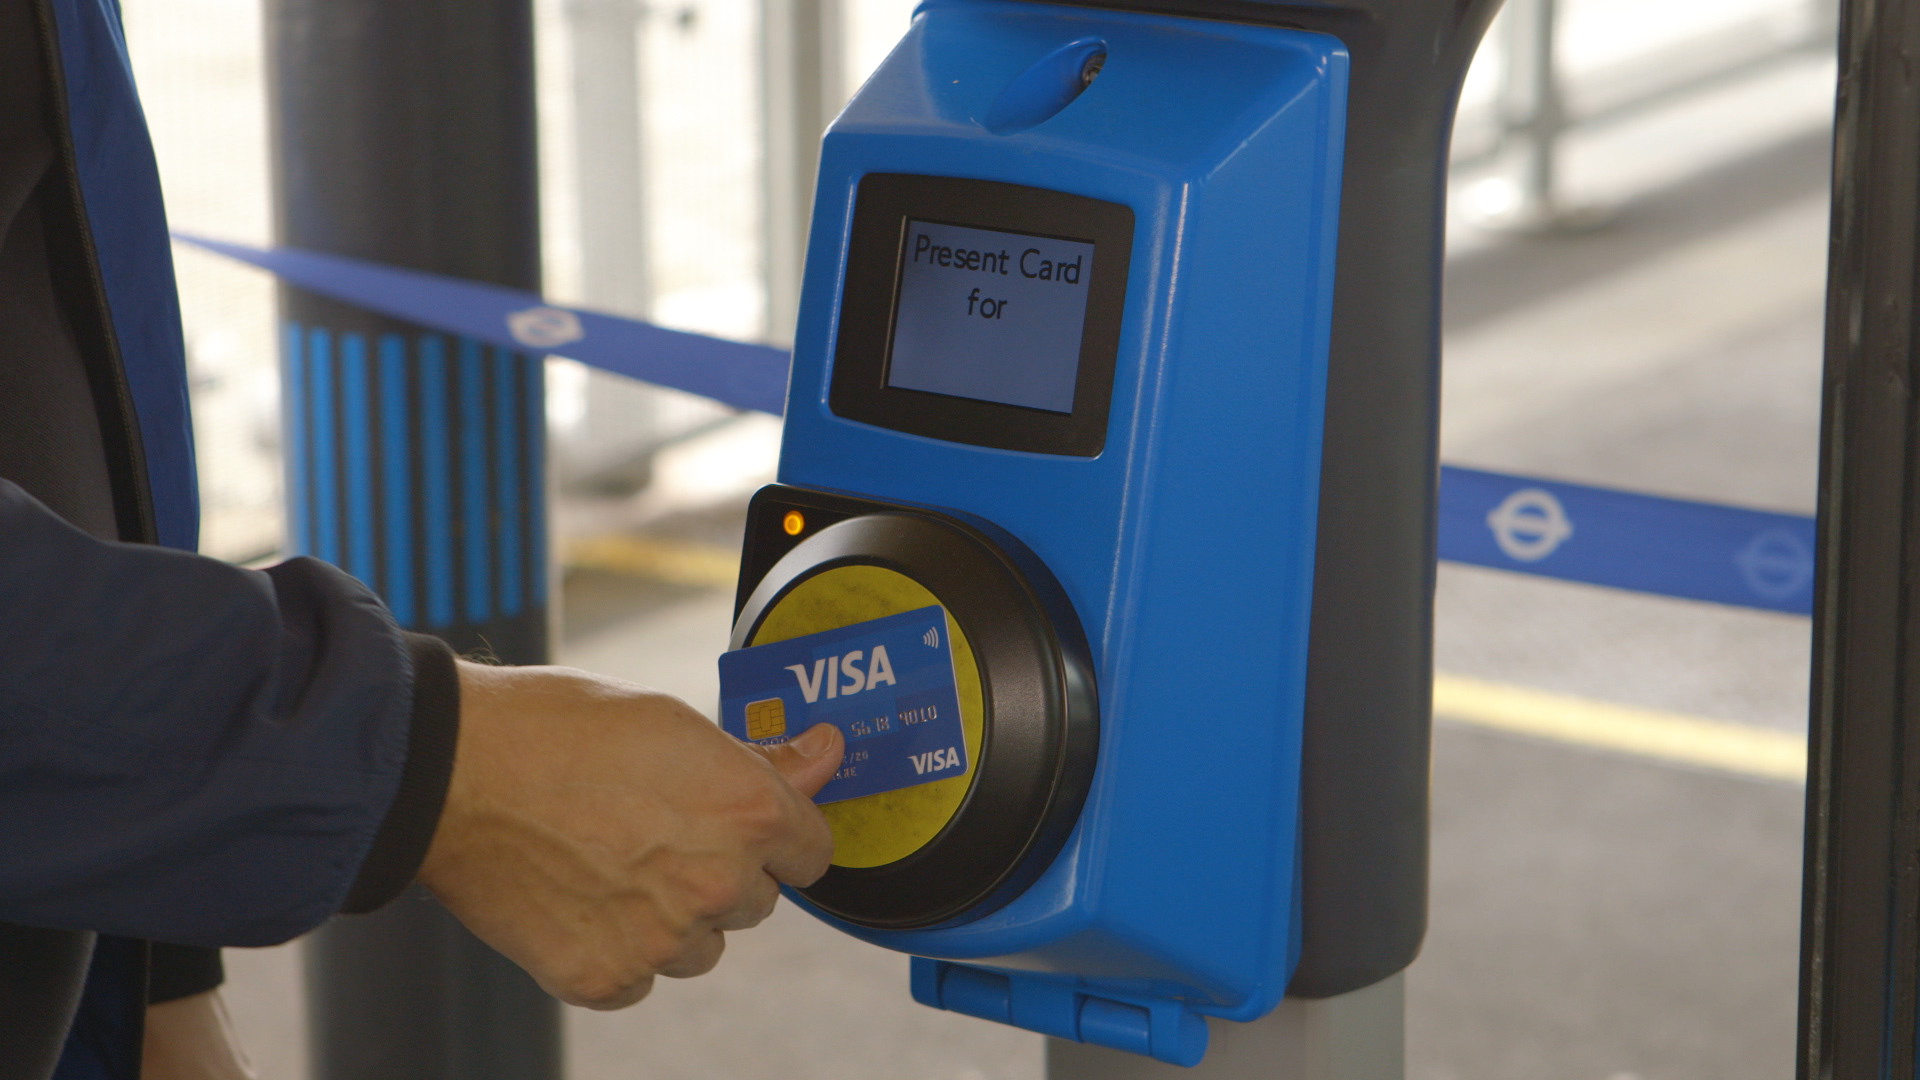 Visa Touch to Pay